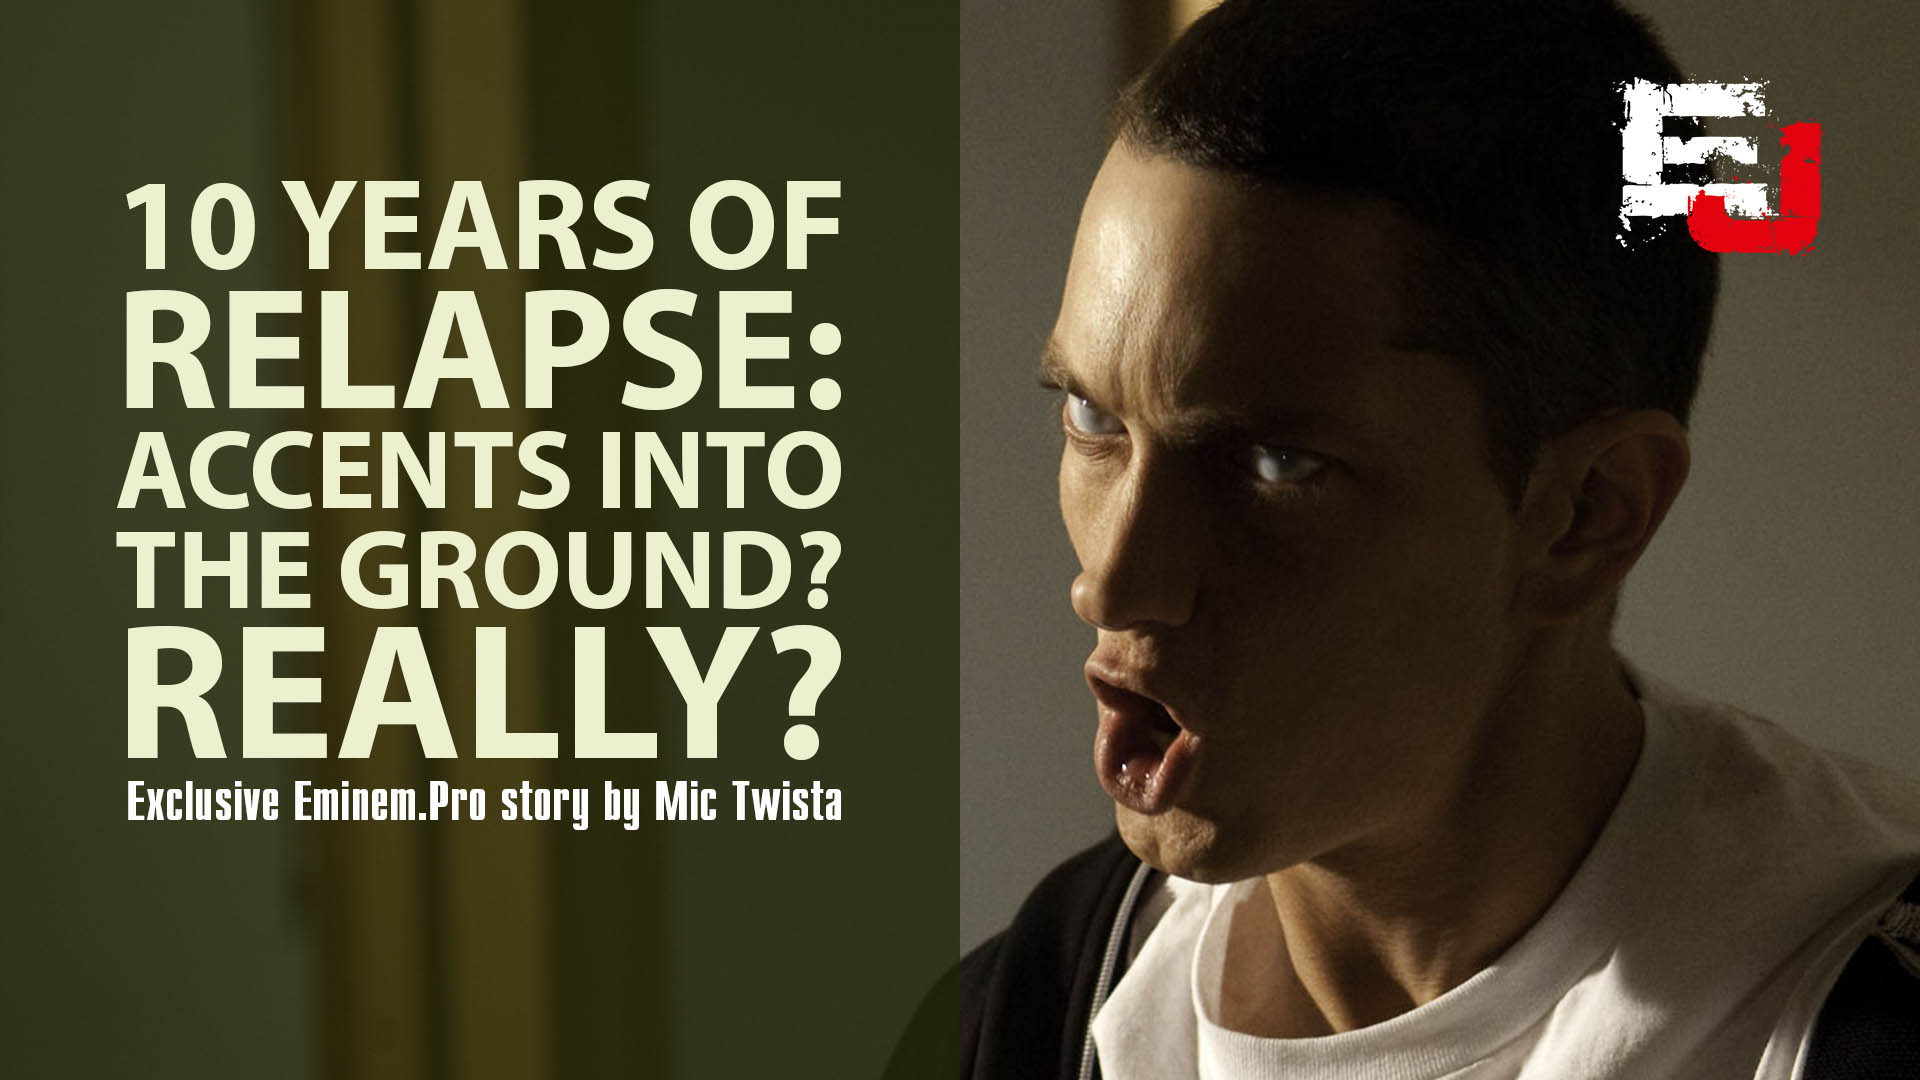 10 Years of Relapse. Accents into the Ground? Really?